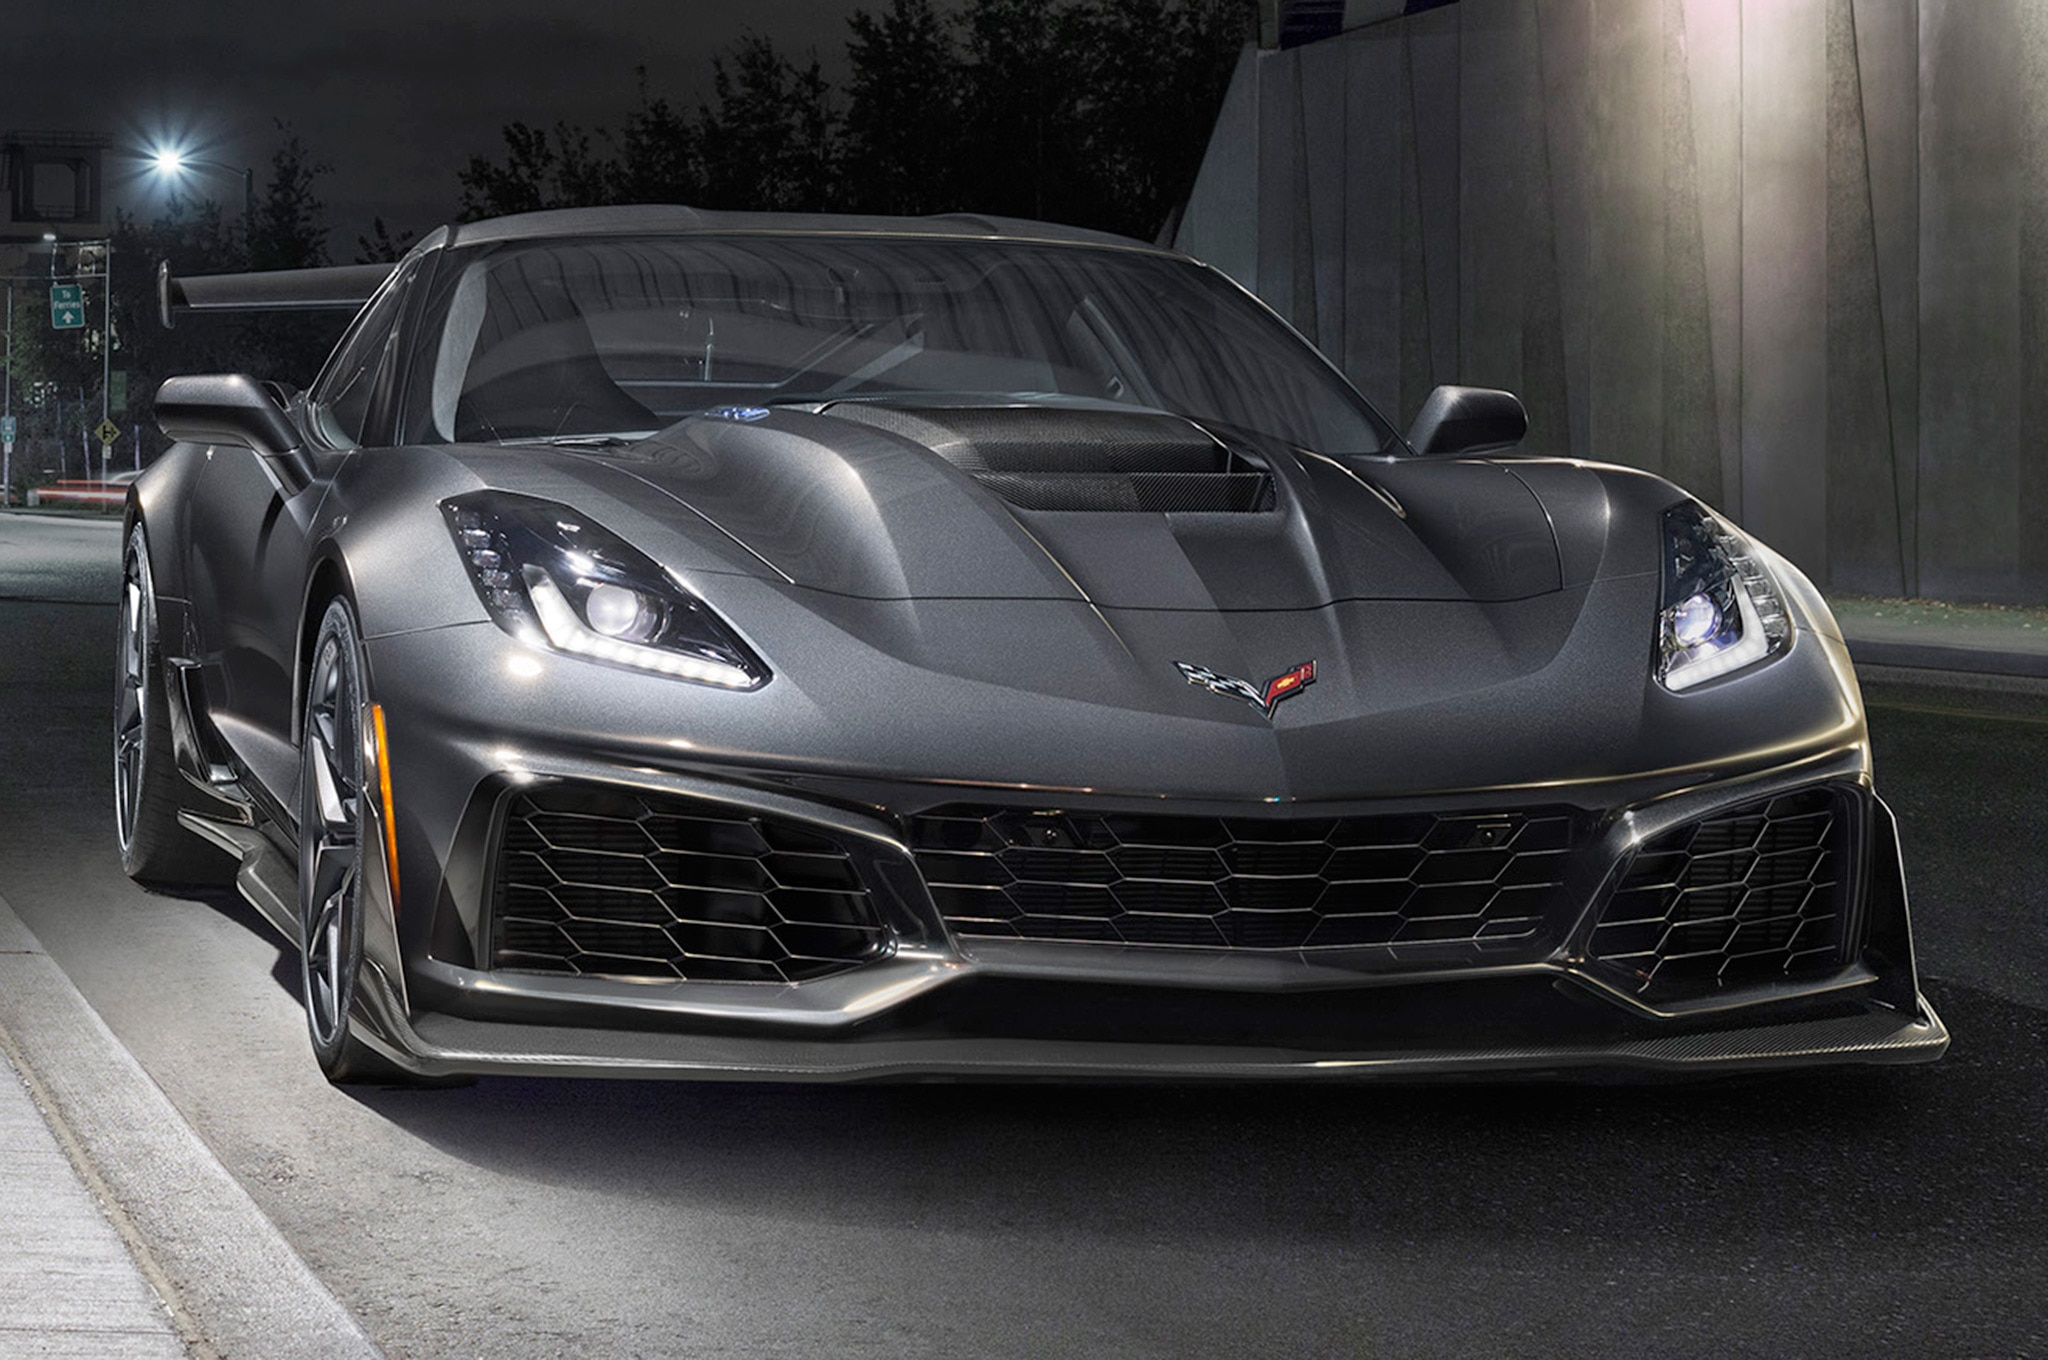 755 Horsepower 2019 Chevy Corvette Zr1 Is The Fastest